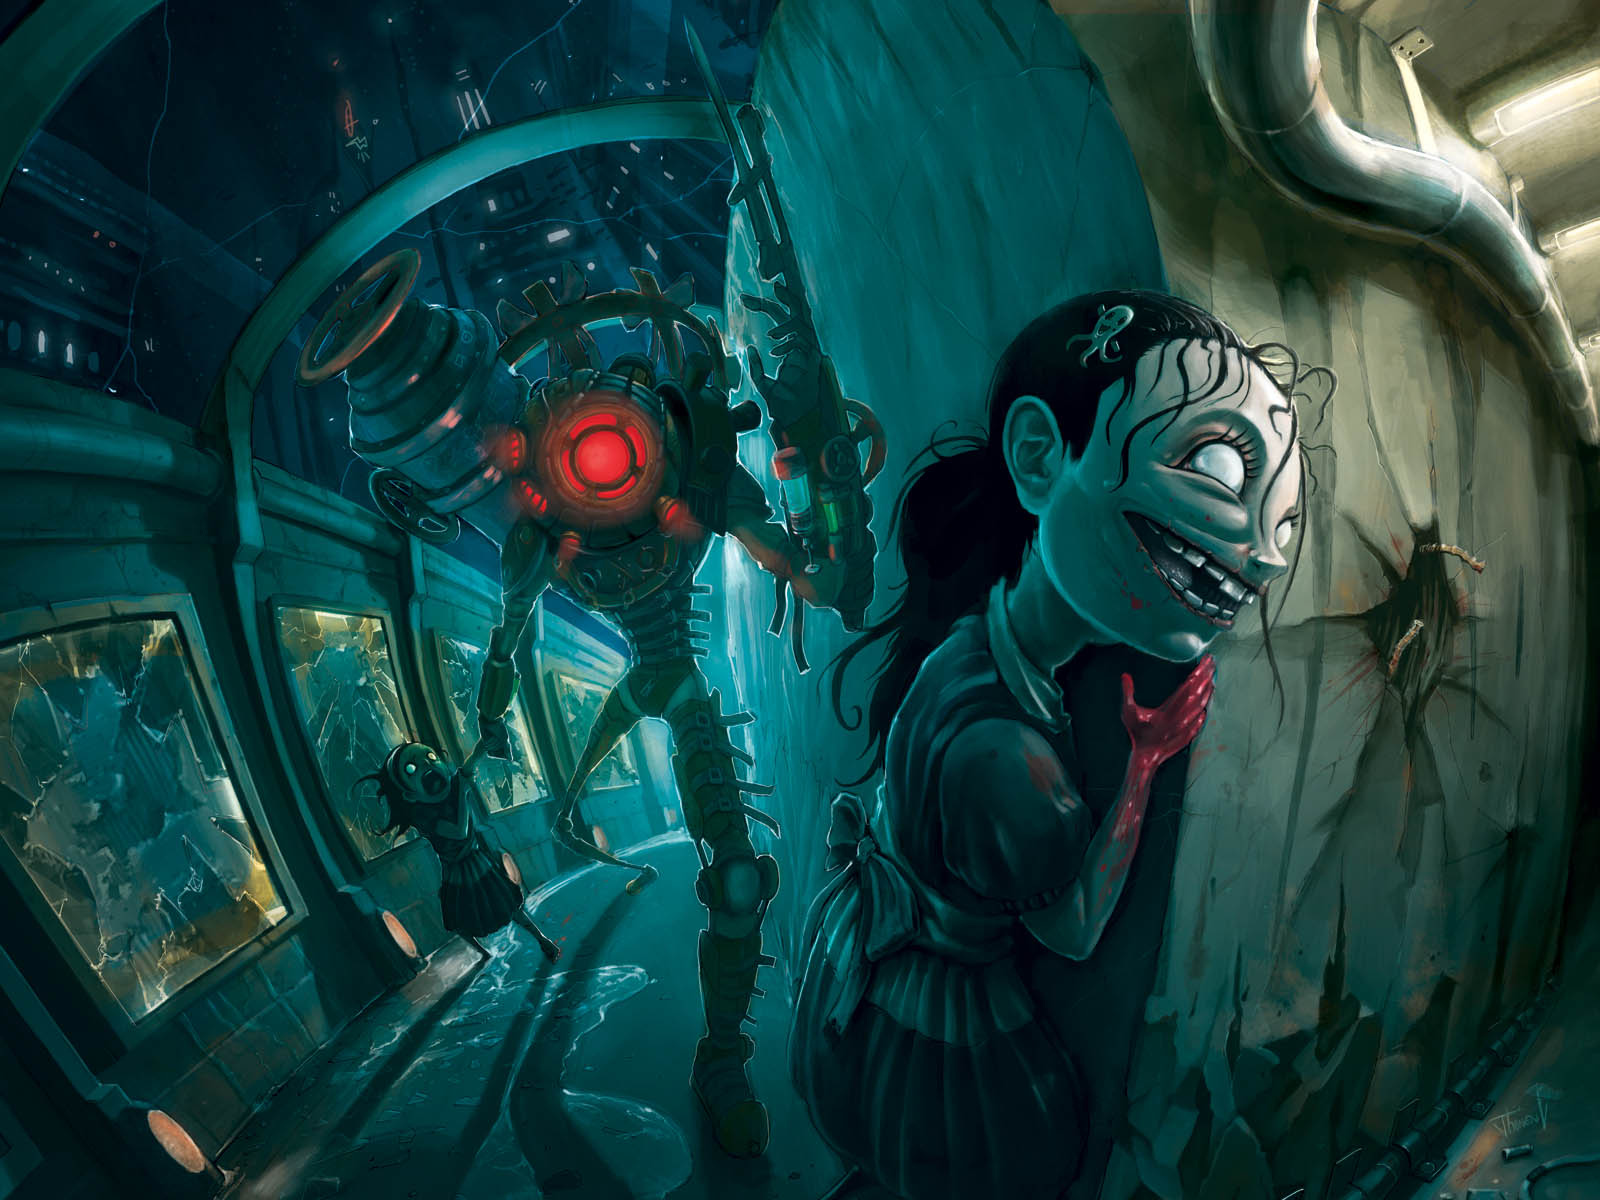 Previous Bioshock 2 Wallpaper Crazy Little Sister And Big